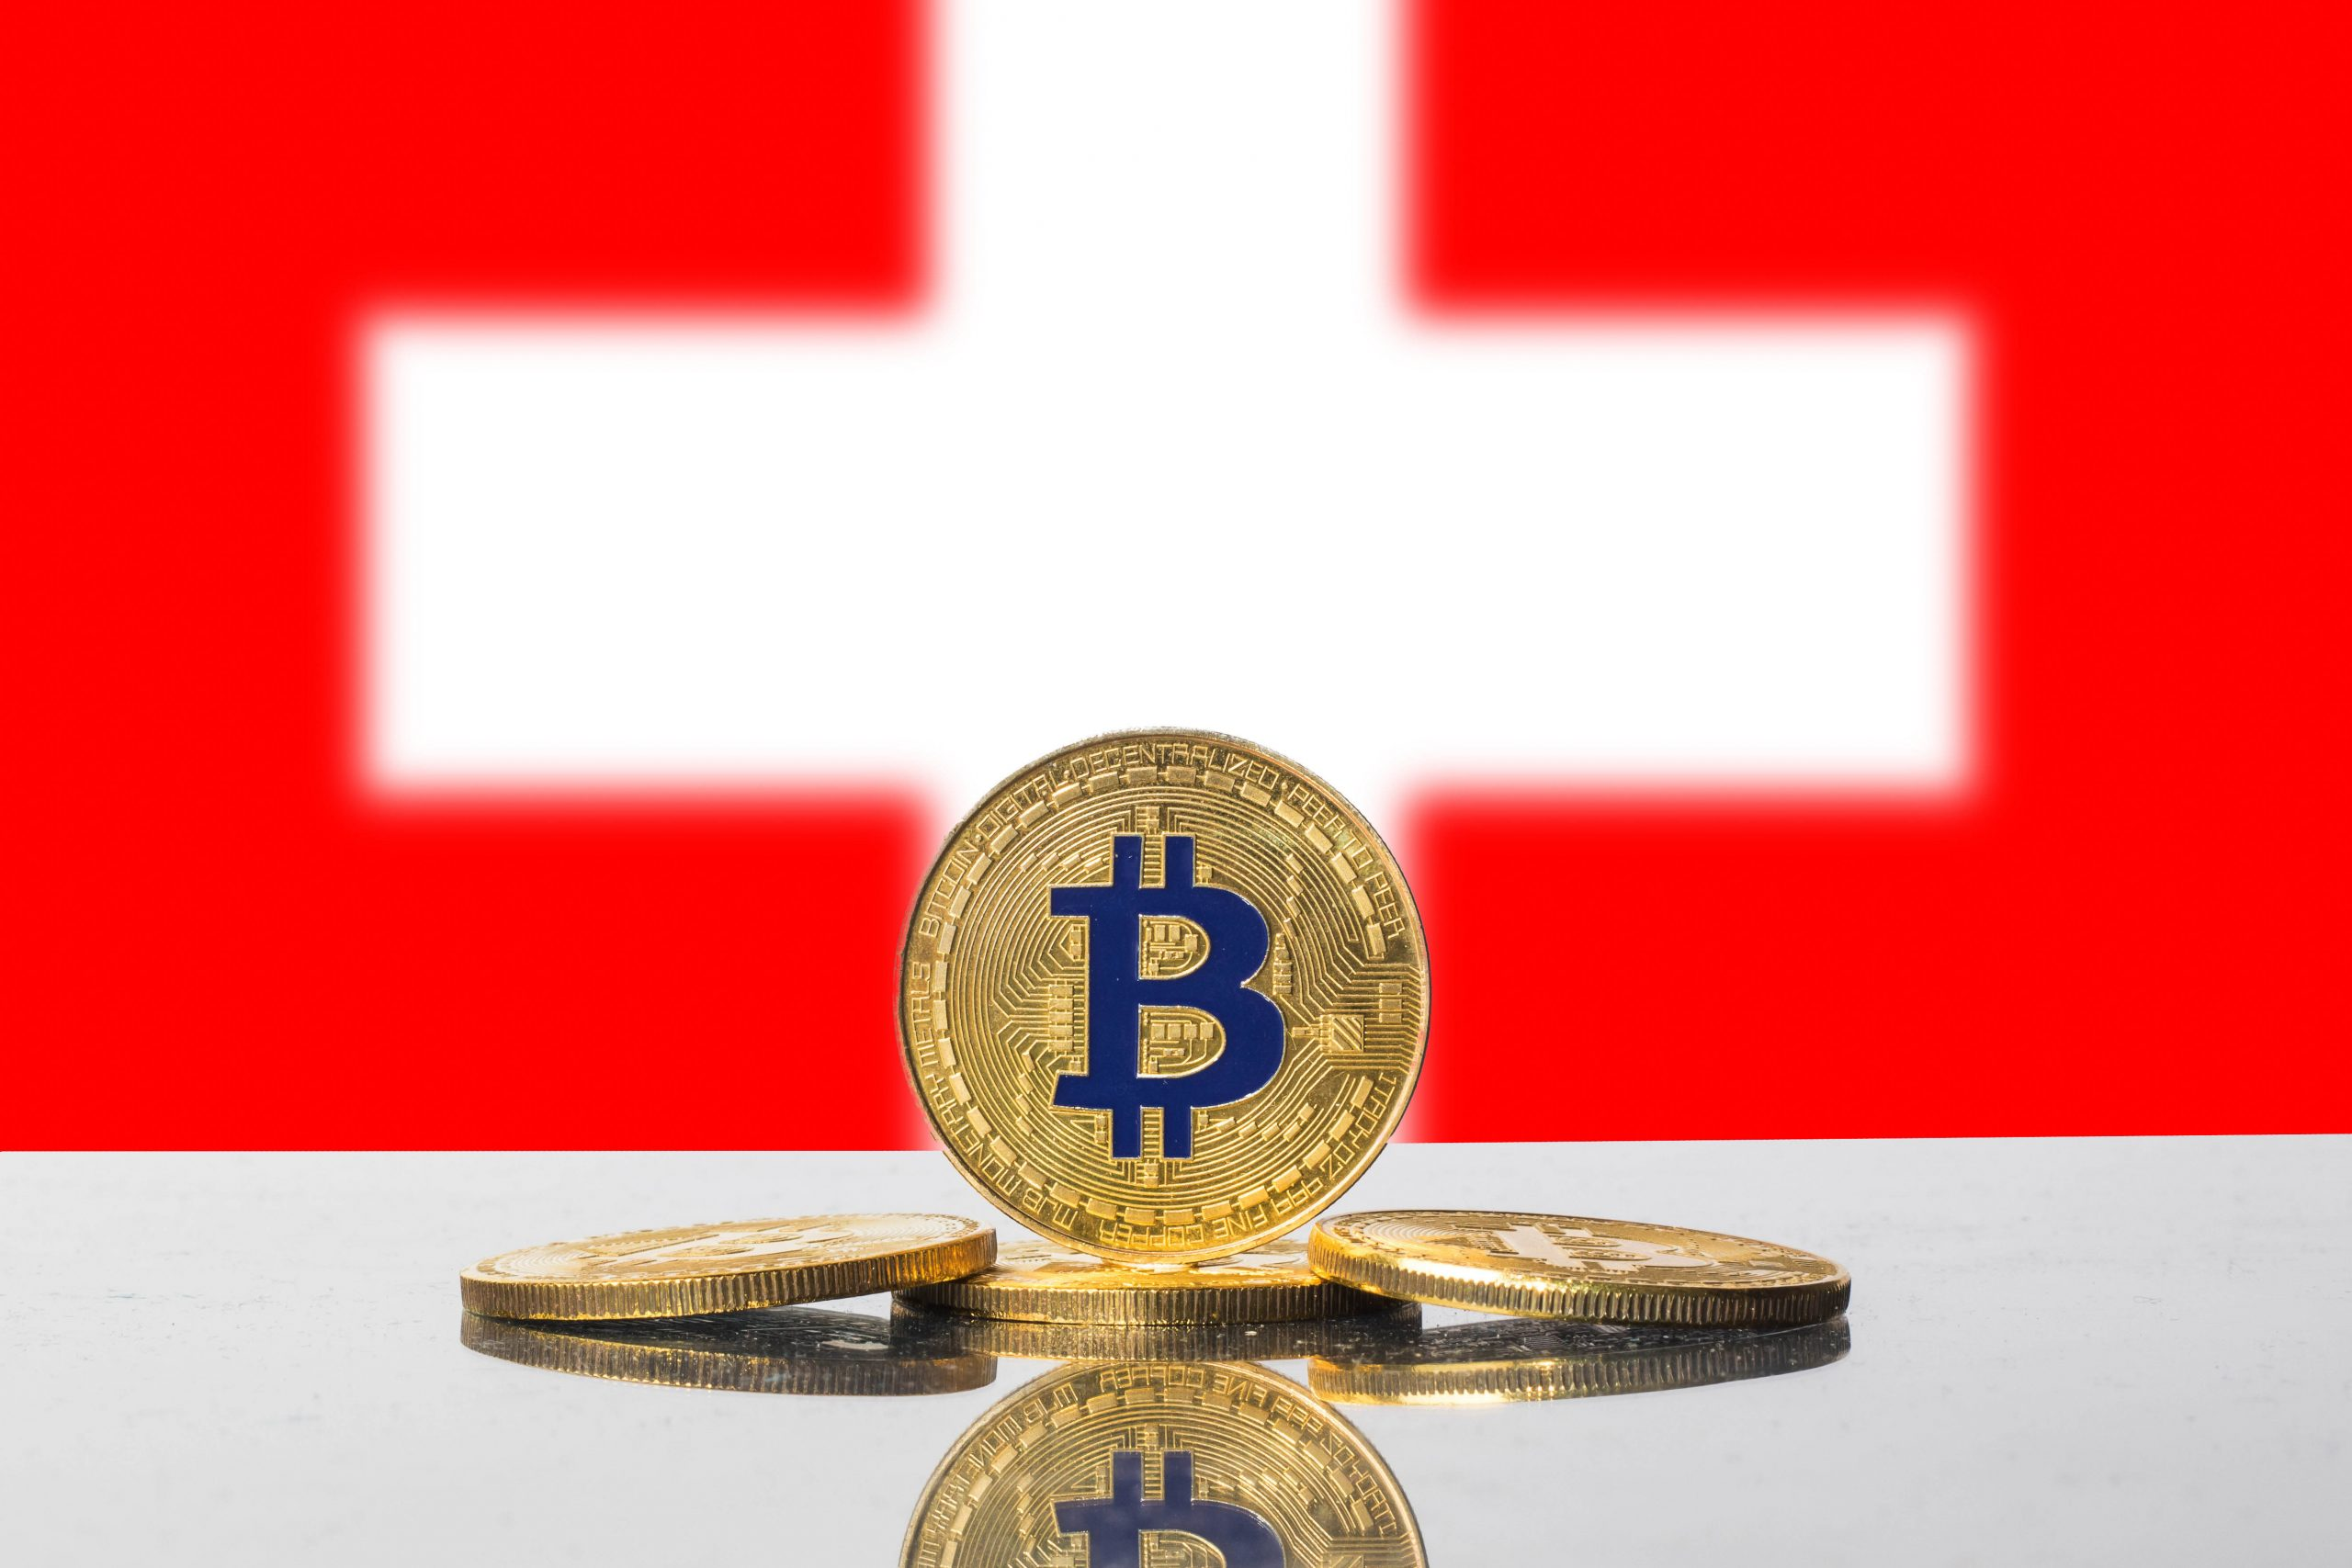 Swiss regulator approves first crypto investment funds